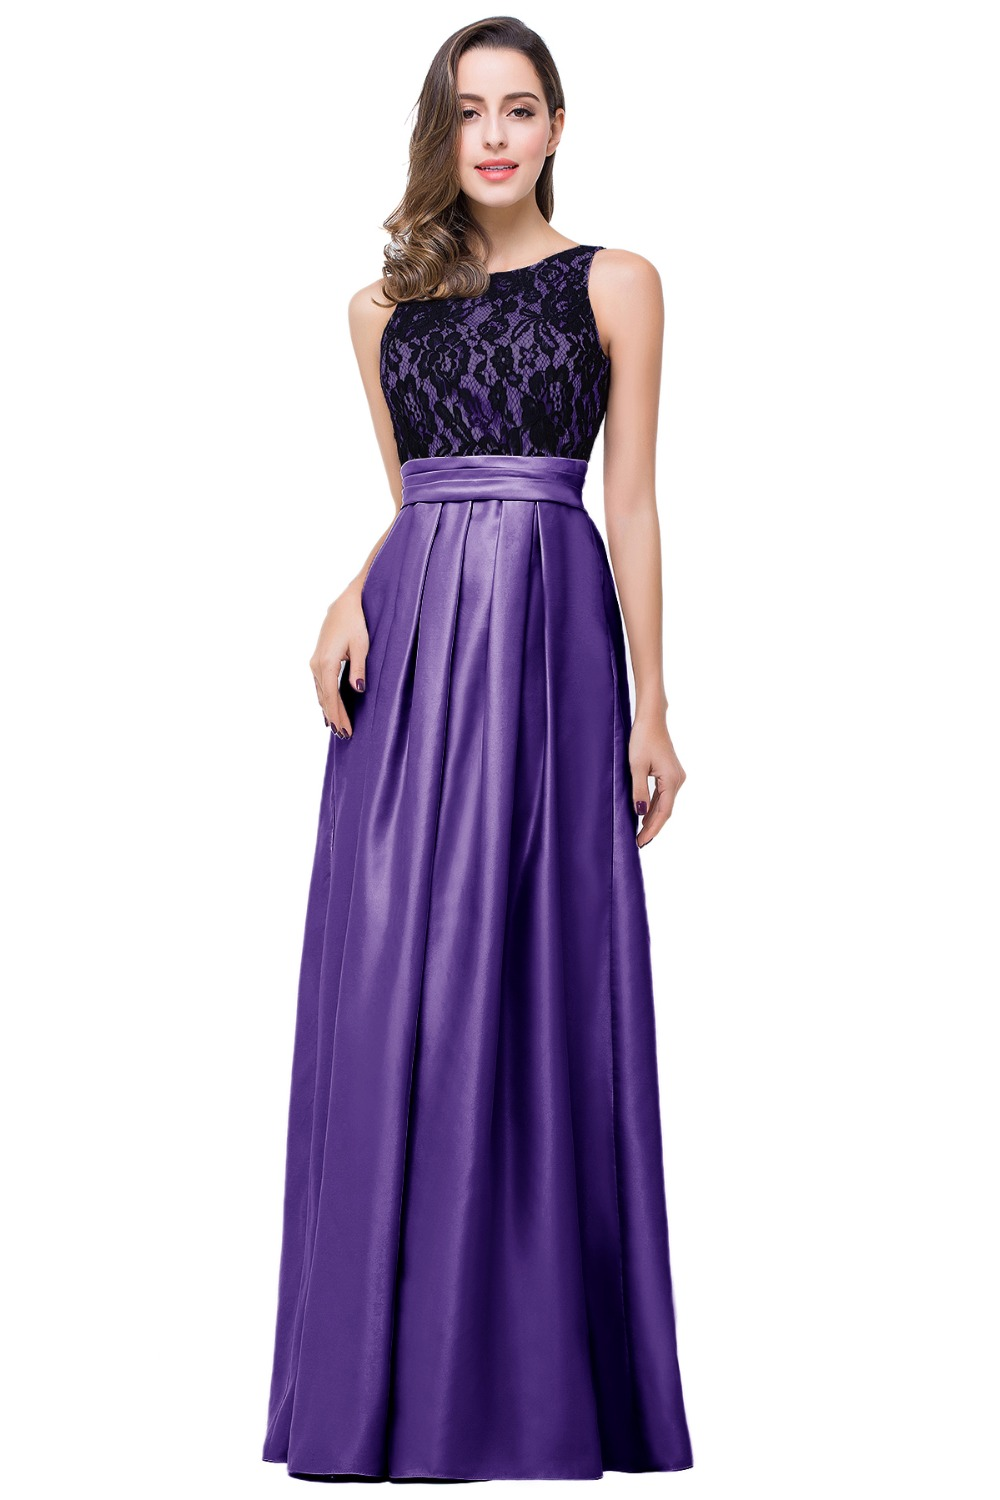 Under 50 Real Picture Robe De Soiree Lace Long Purple